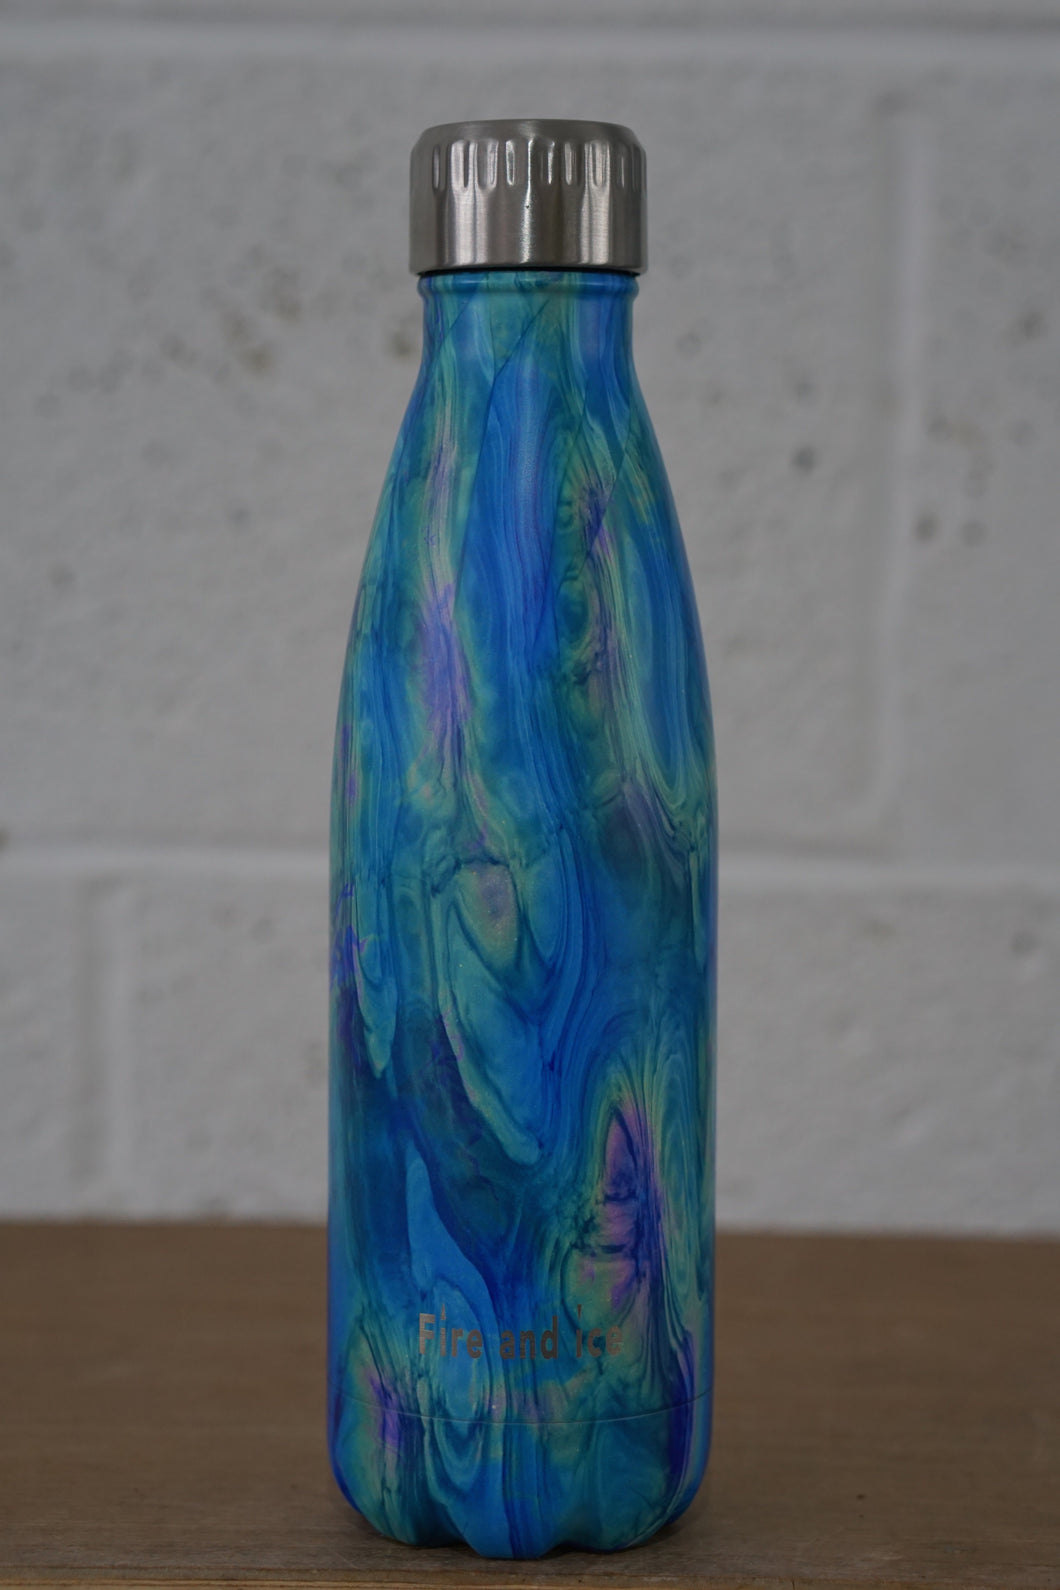 Petrol Refraction - Fire and Ice bottles. Reusable bottle. BPA free. cool designs